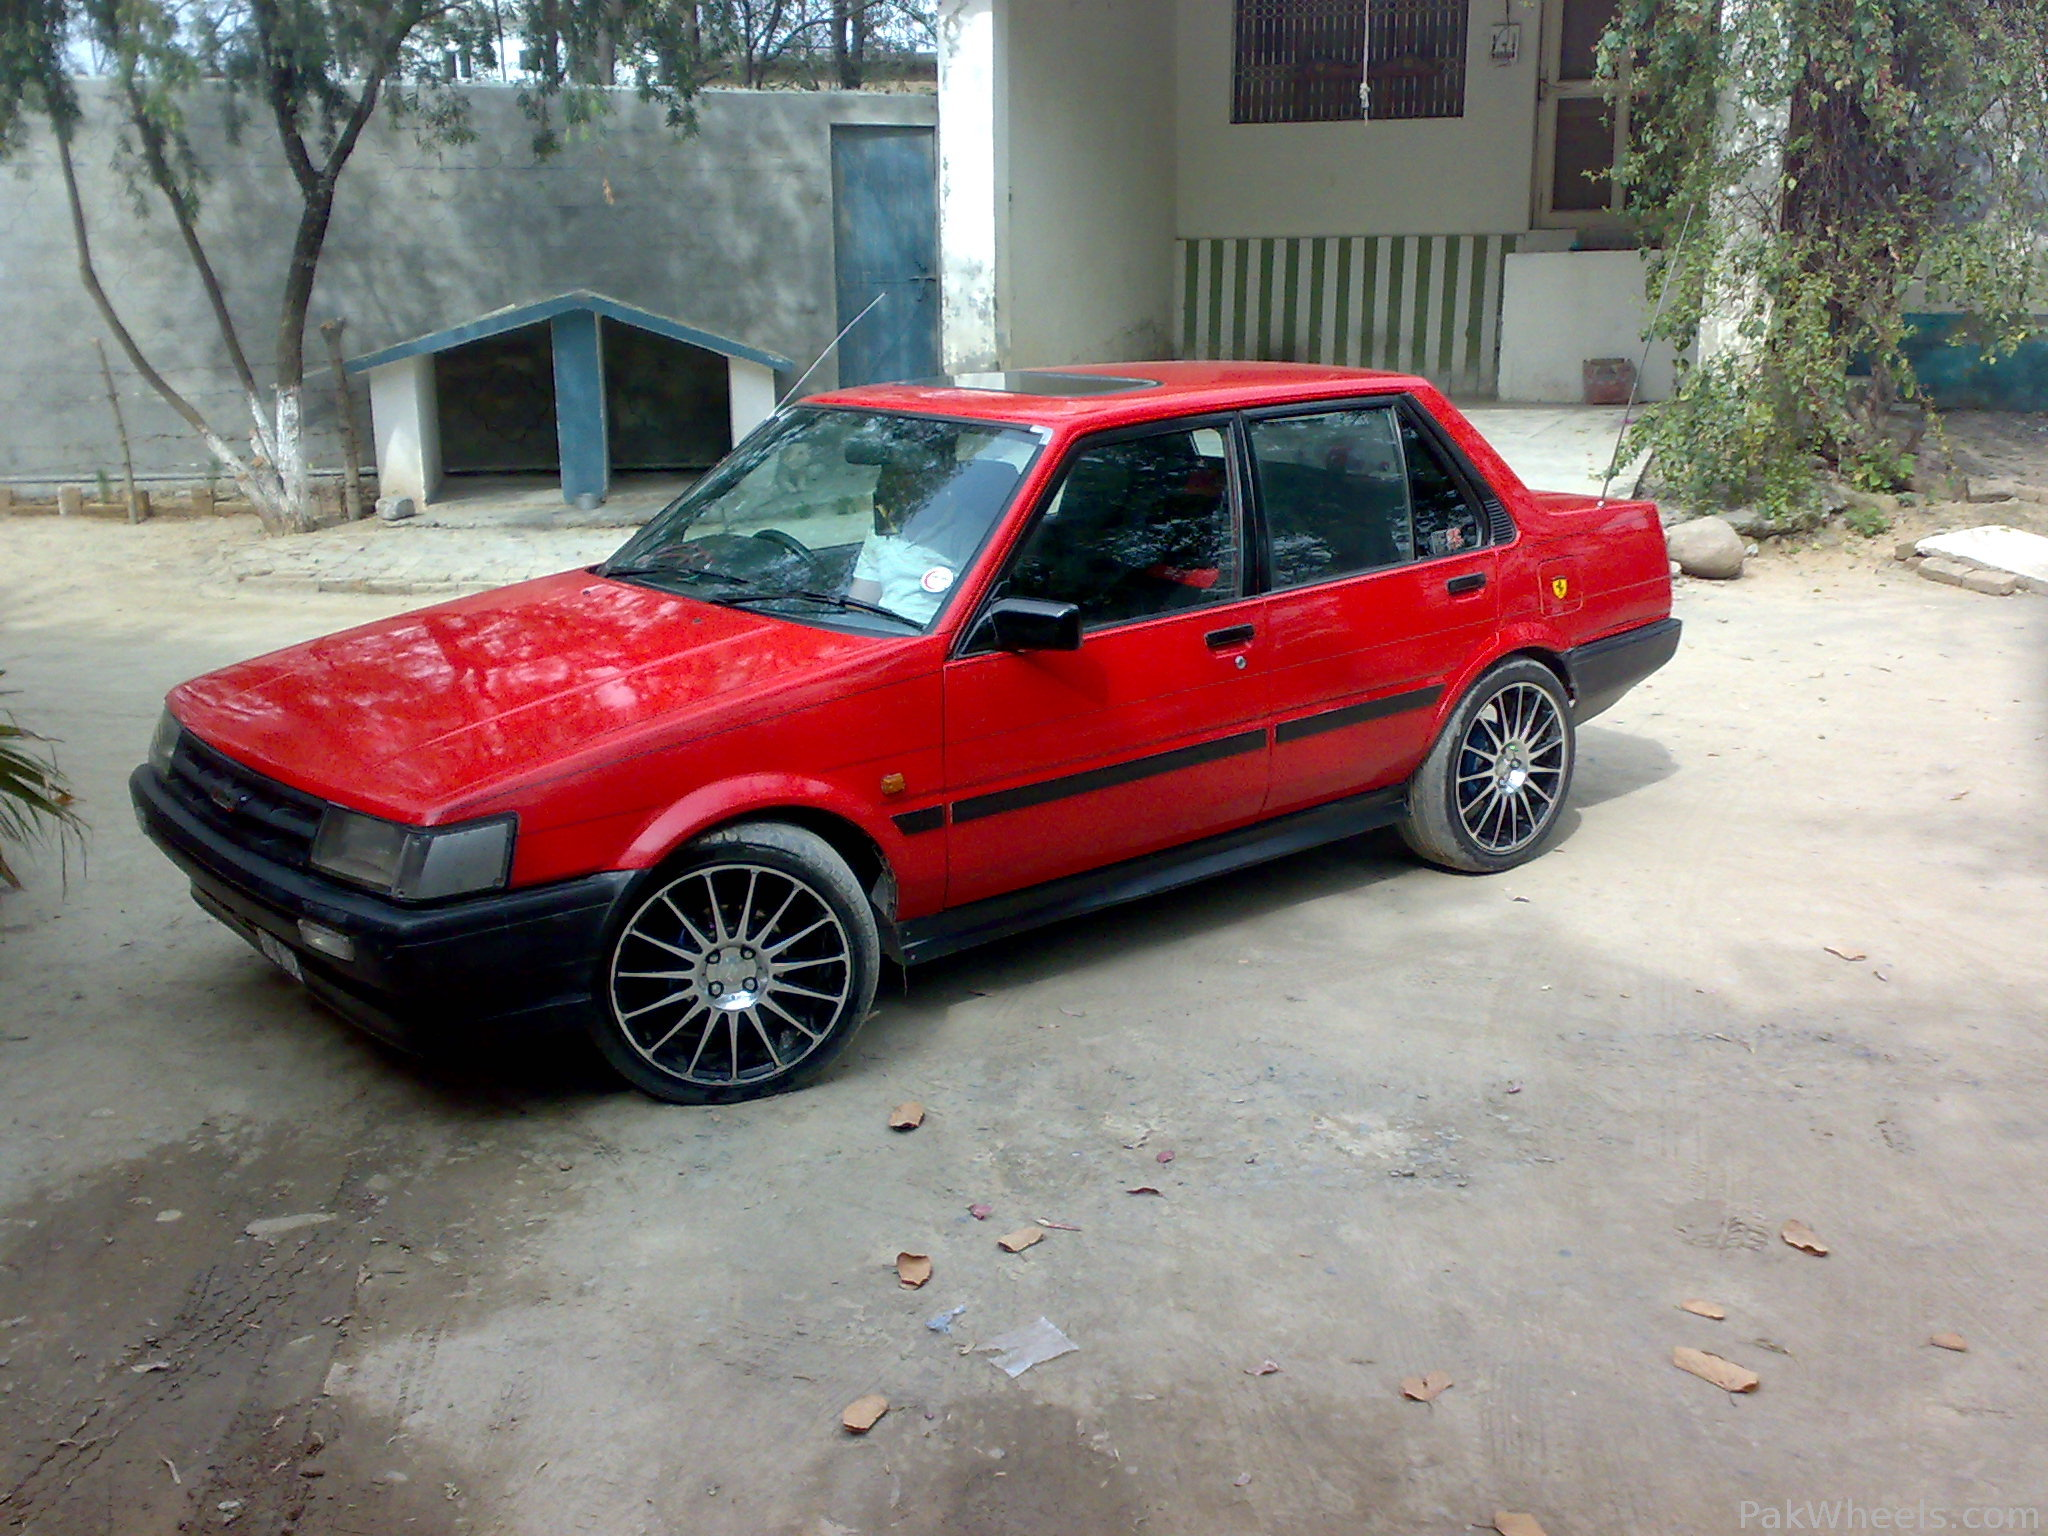 used toyota corolla 1986 car for sale in islamabad 103271 pakwheels. Black Bedroom Furniture Sets. Home Design Ideas